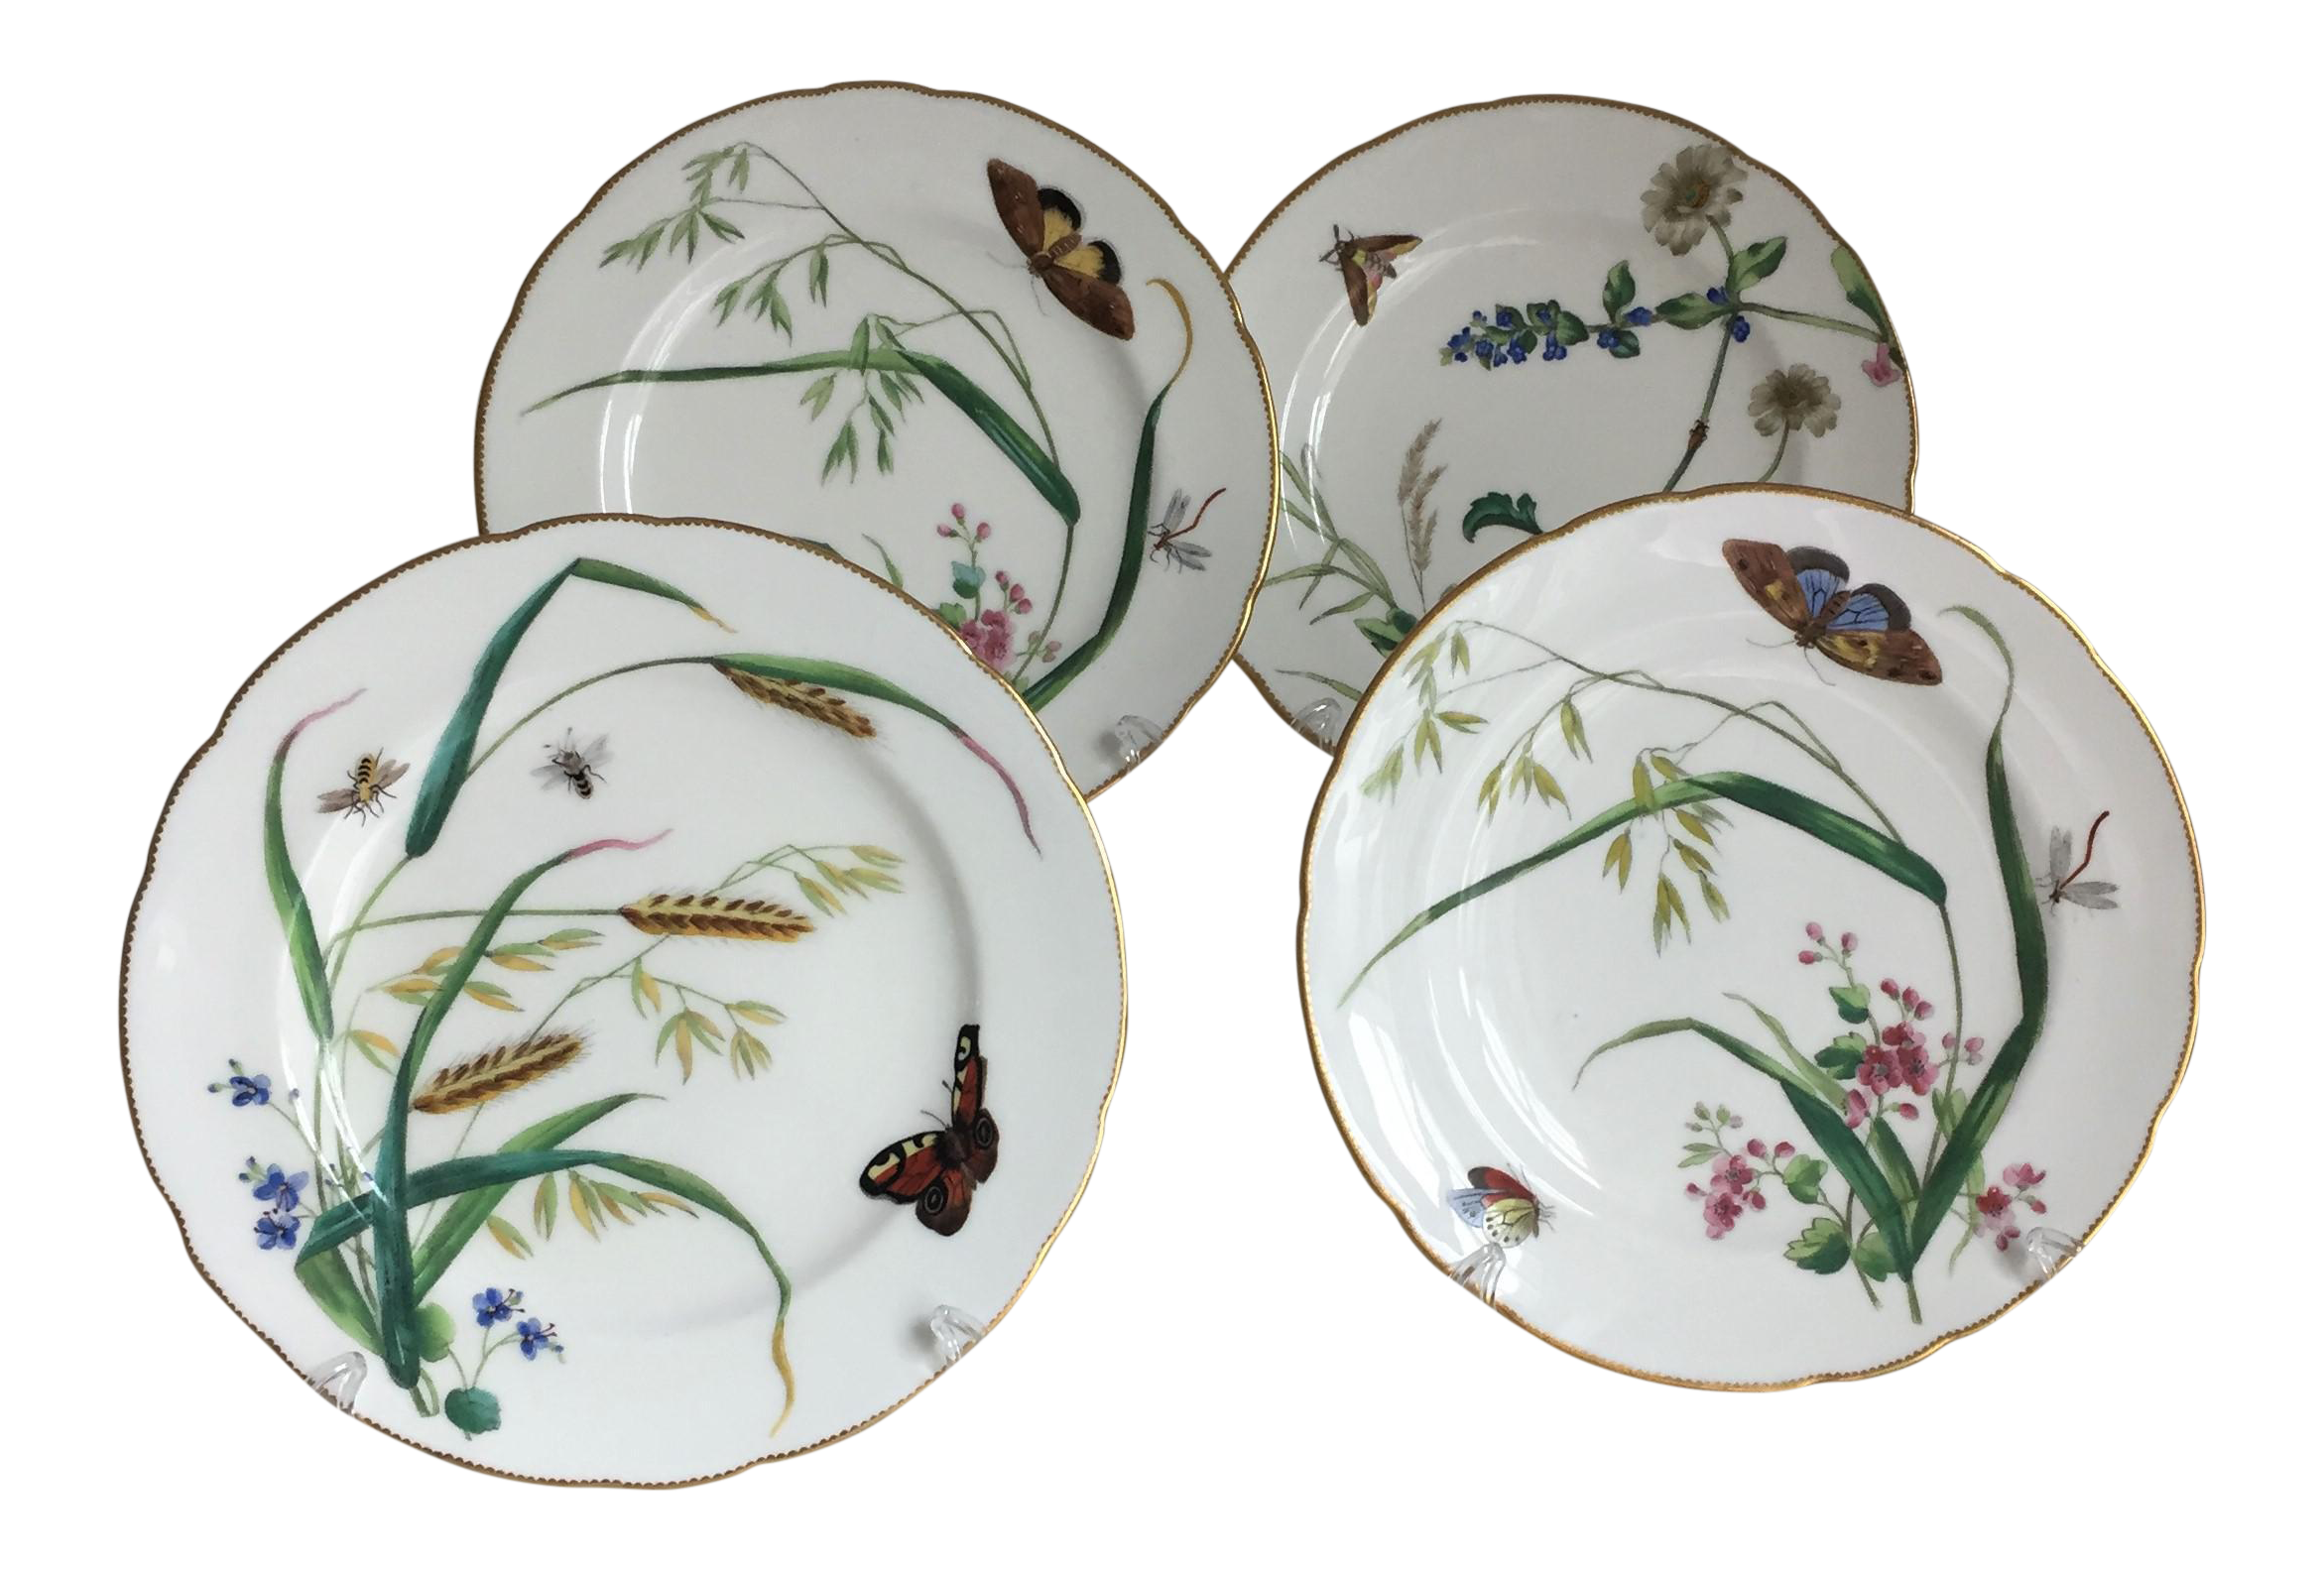 Minton Dessert Plates - Set of 4  sc 1 st  Chairish & Minton Dessert Plates - Set of 4 | Chairish